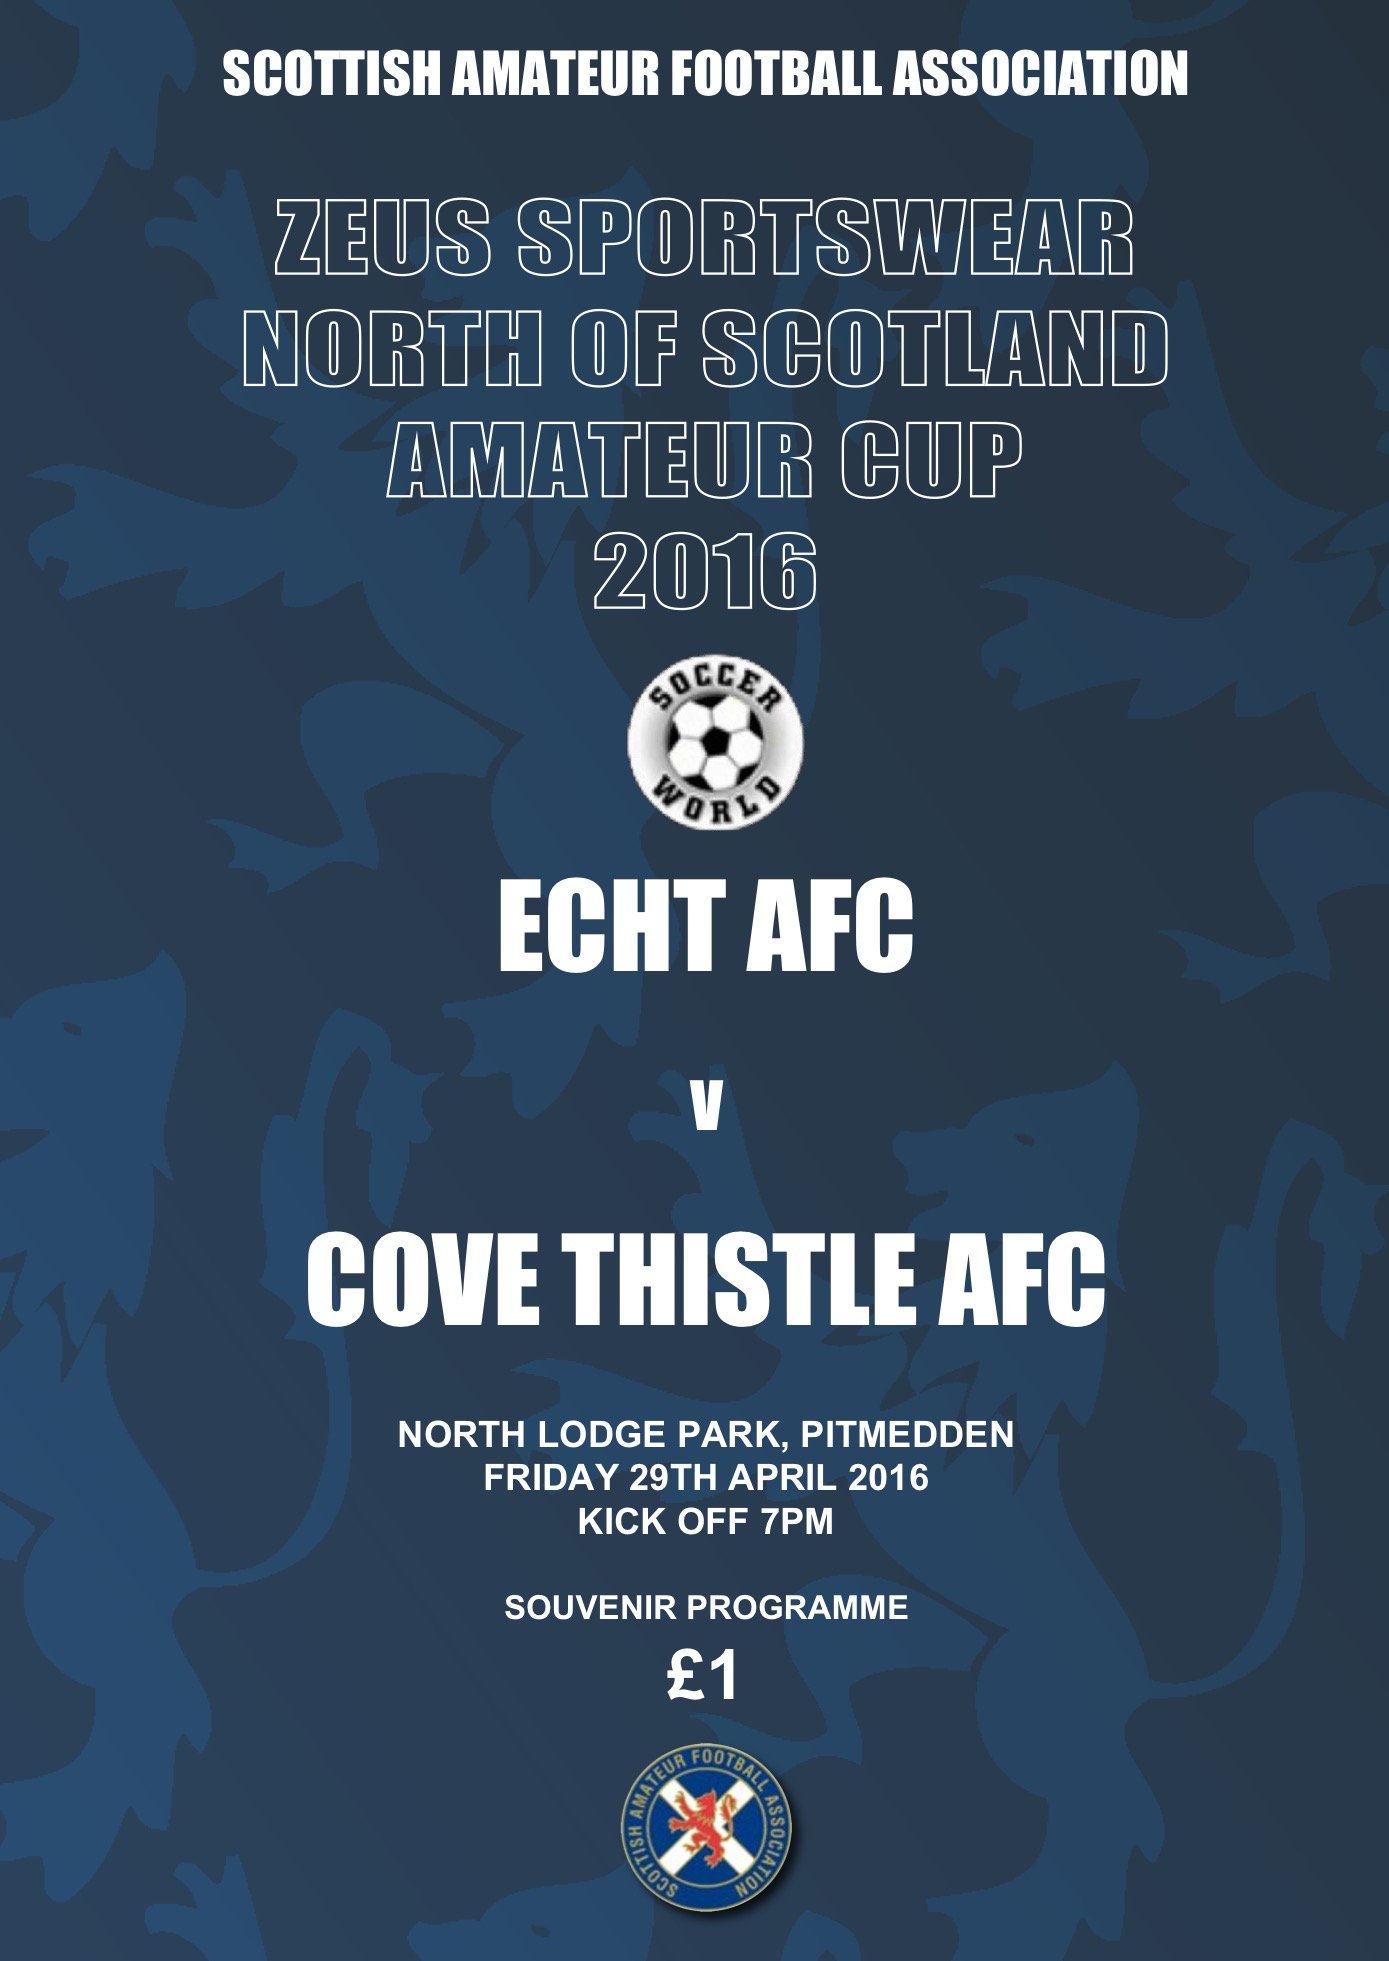 North of Scotland Amateur Cup Final 2016